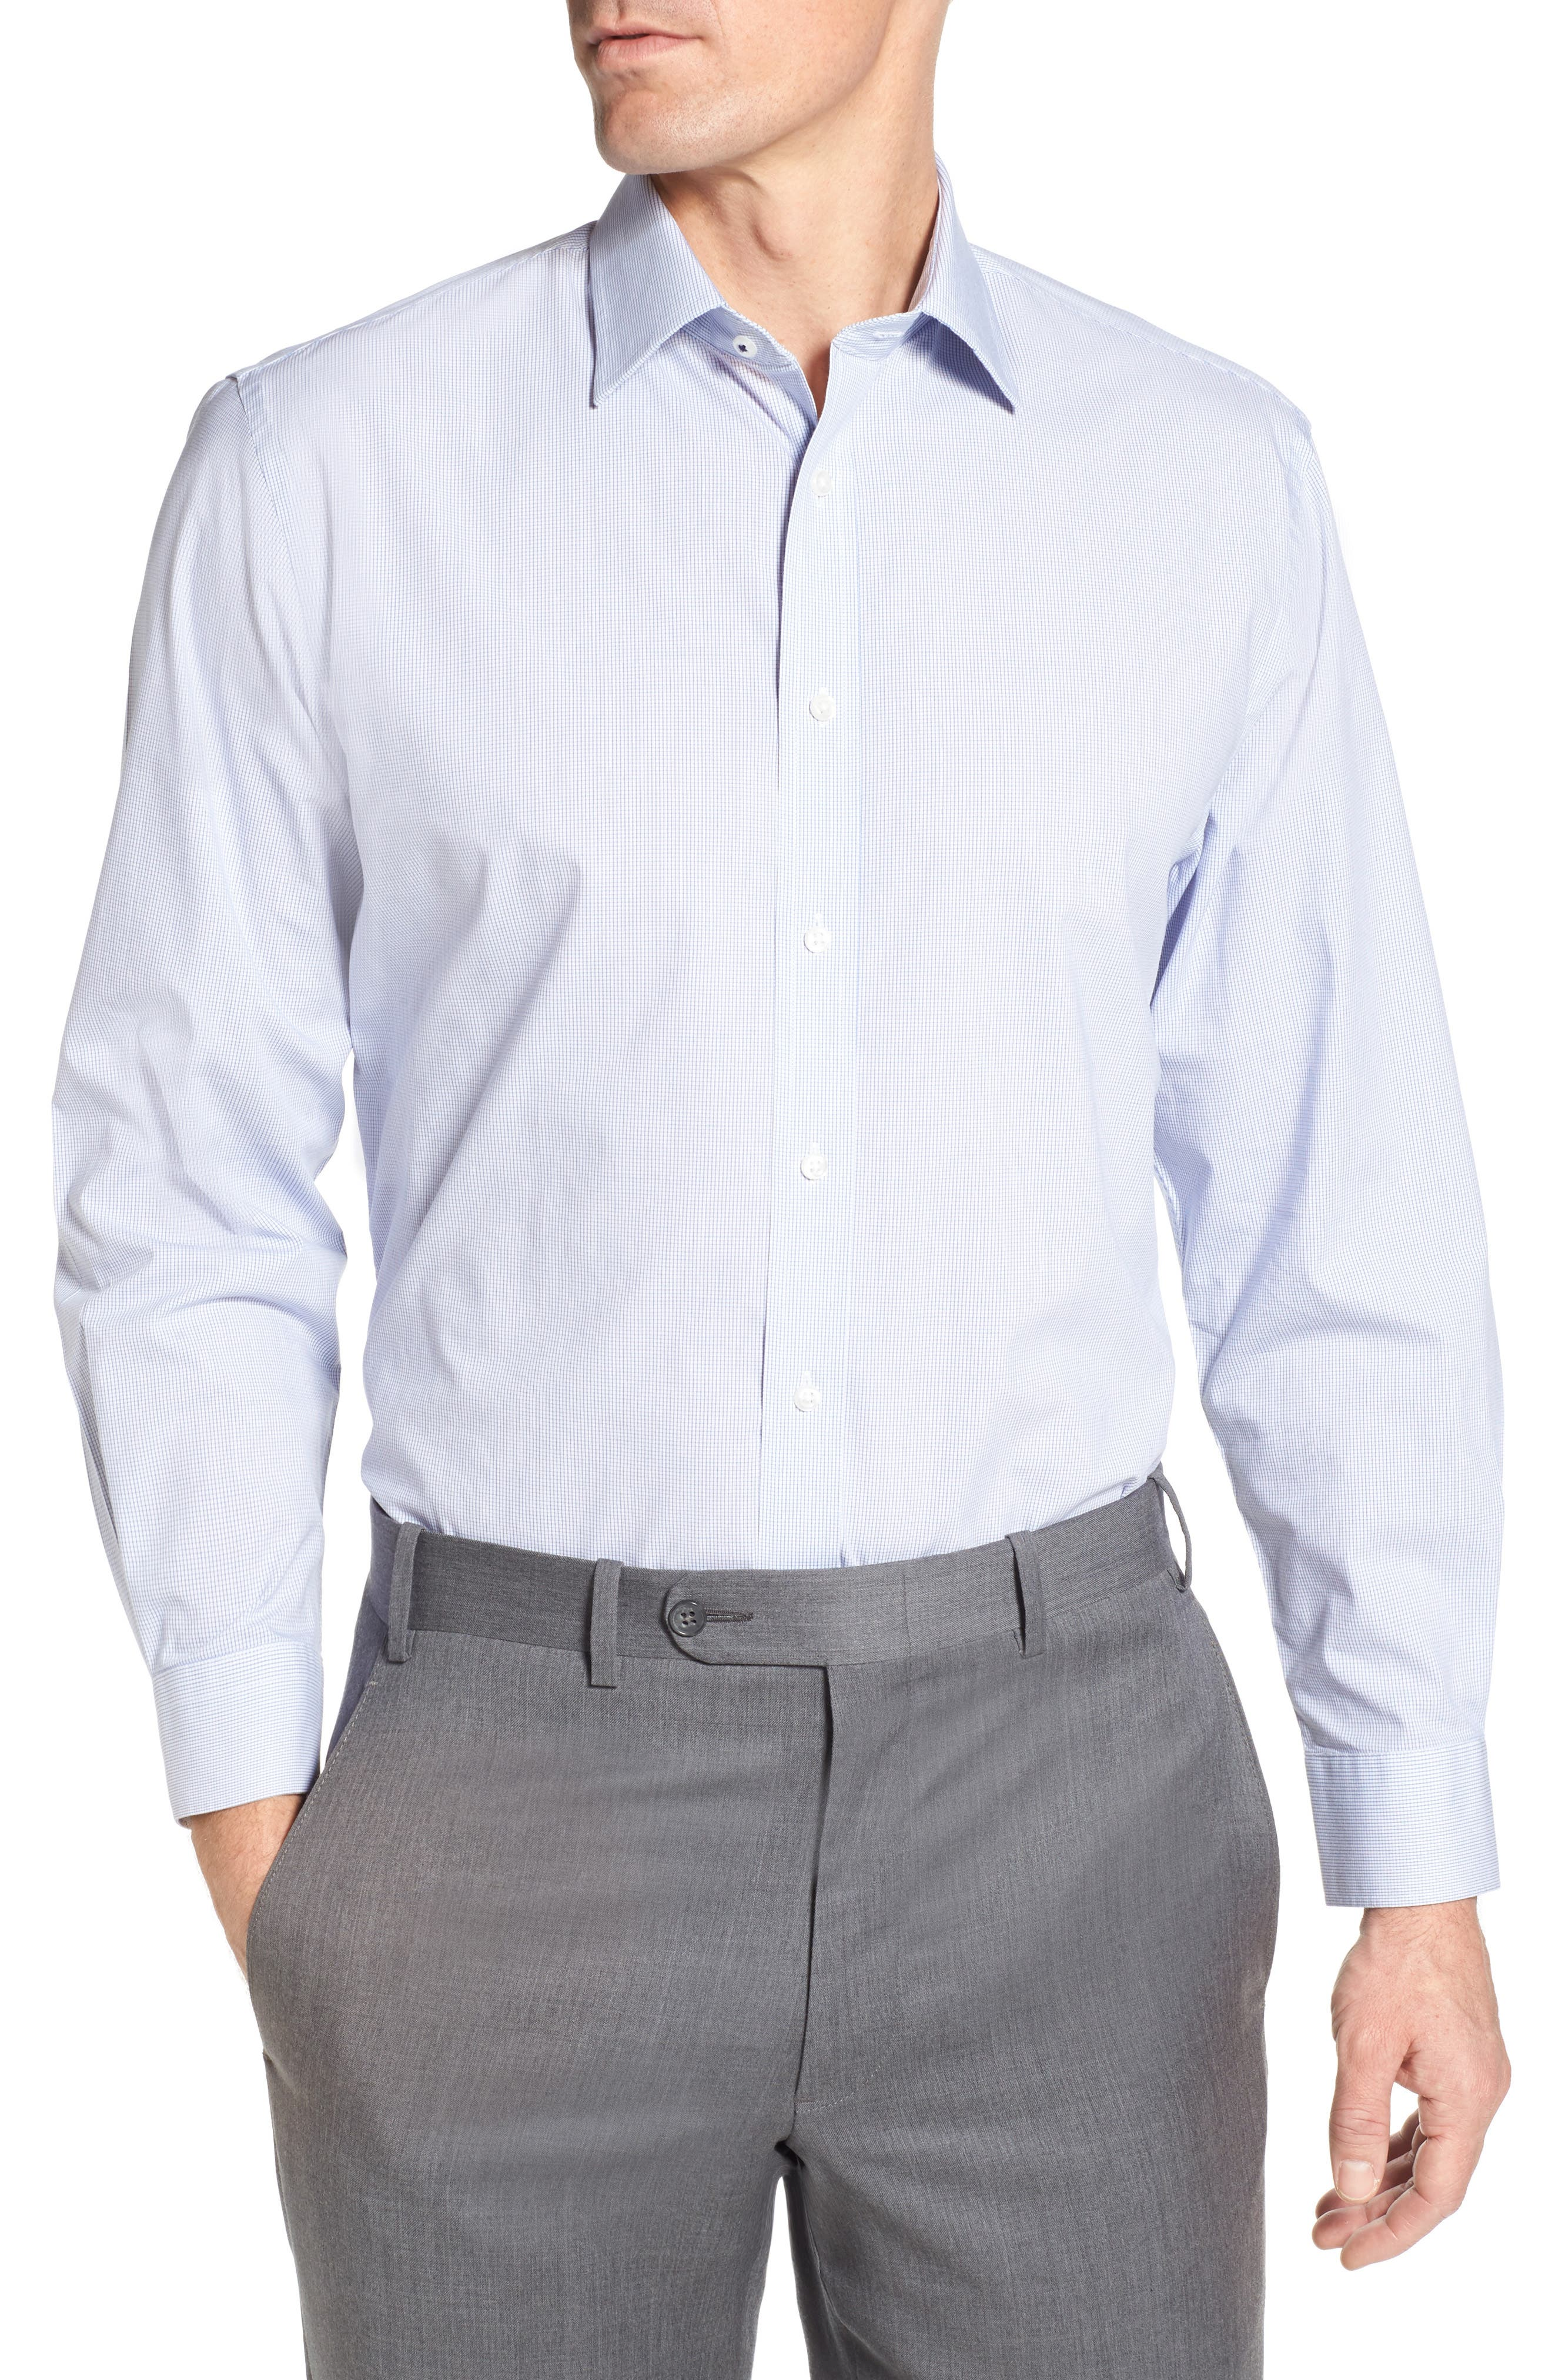 Main Image - Nordstrom Men's Shop Tech-Smart Traditional Fit Stretch Check Dress Shirt